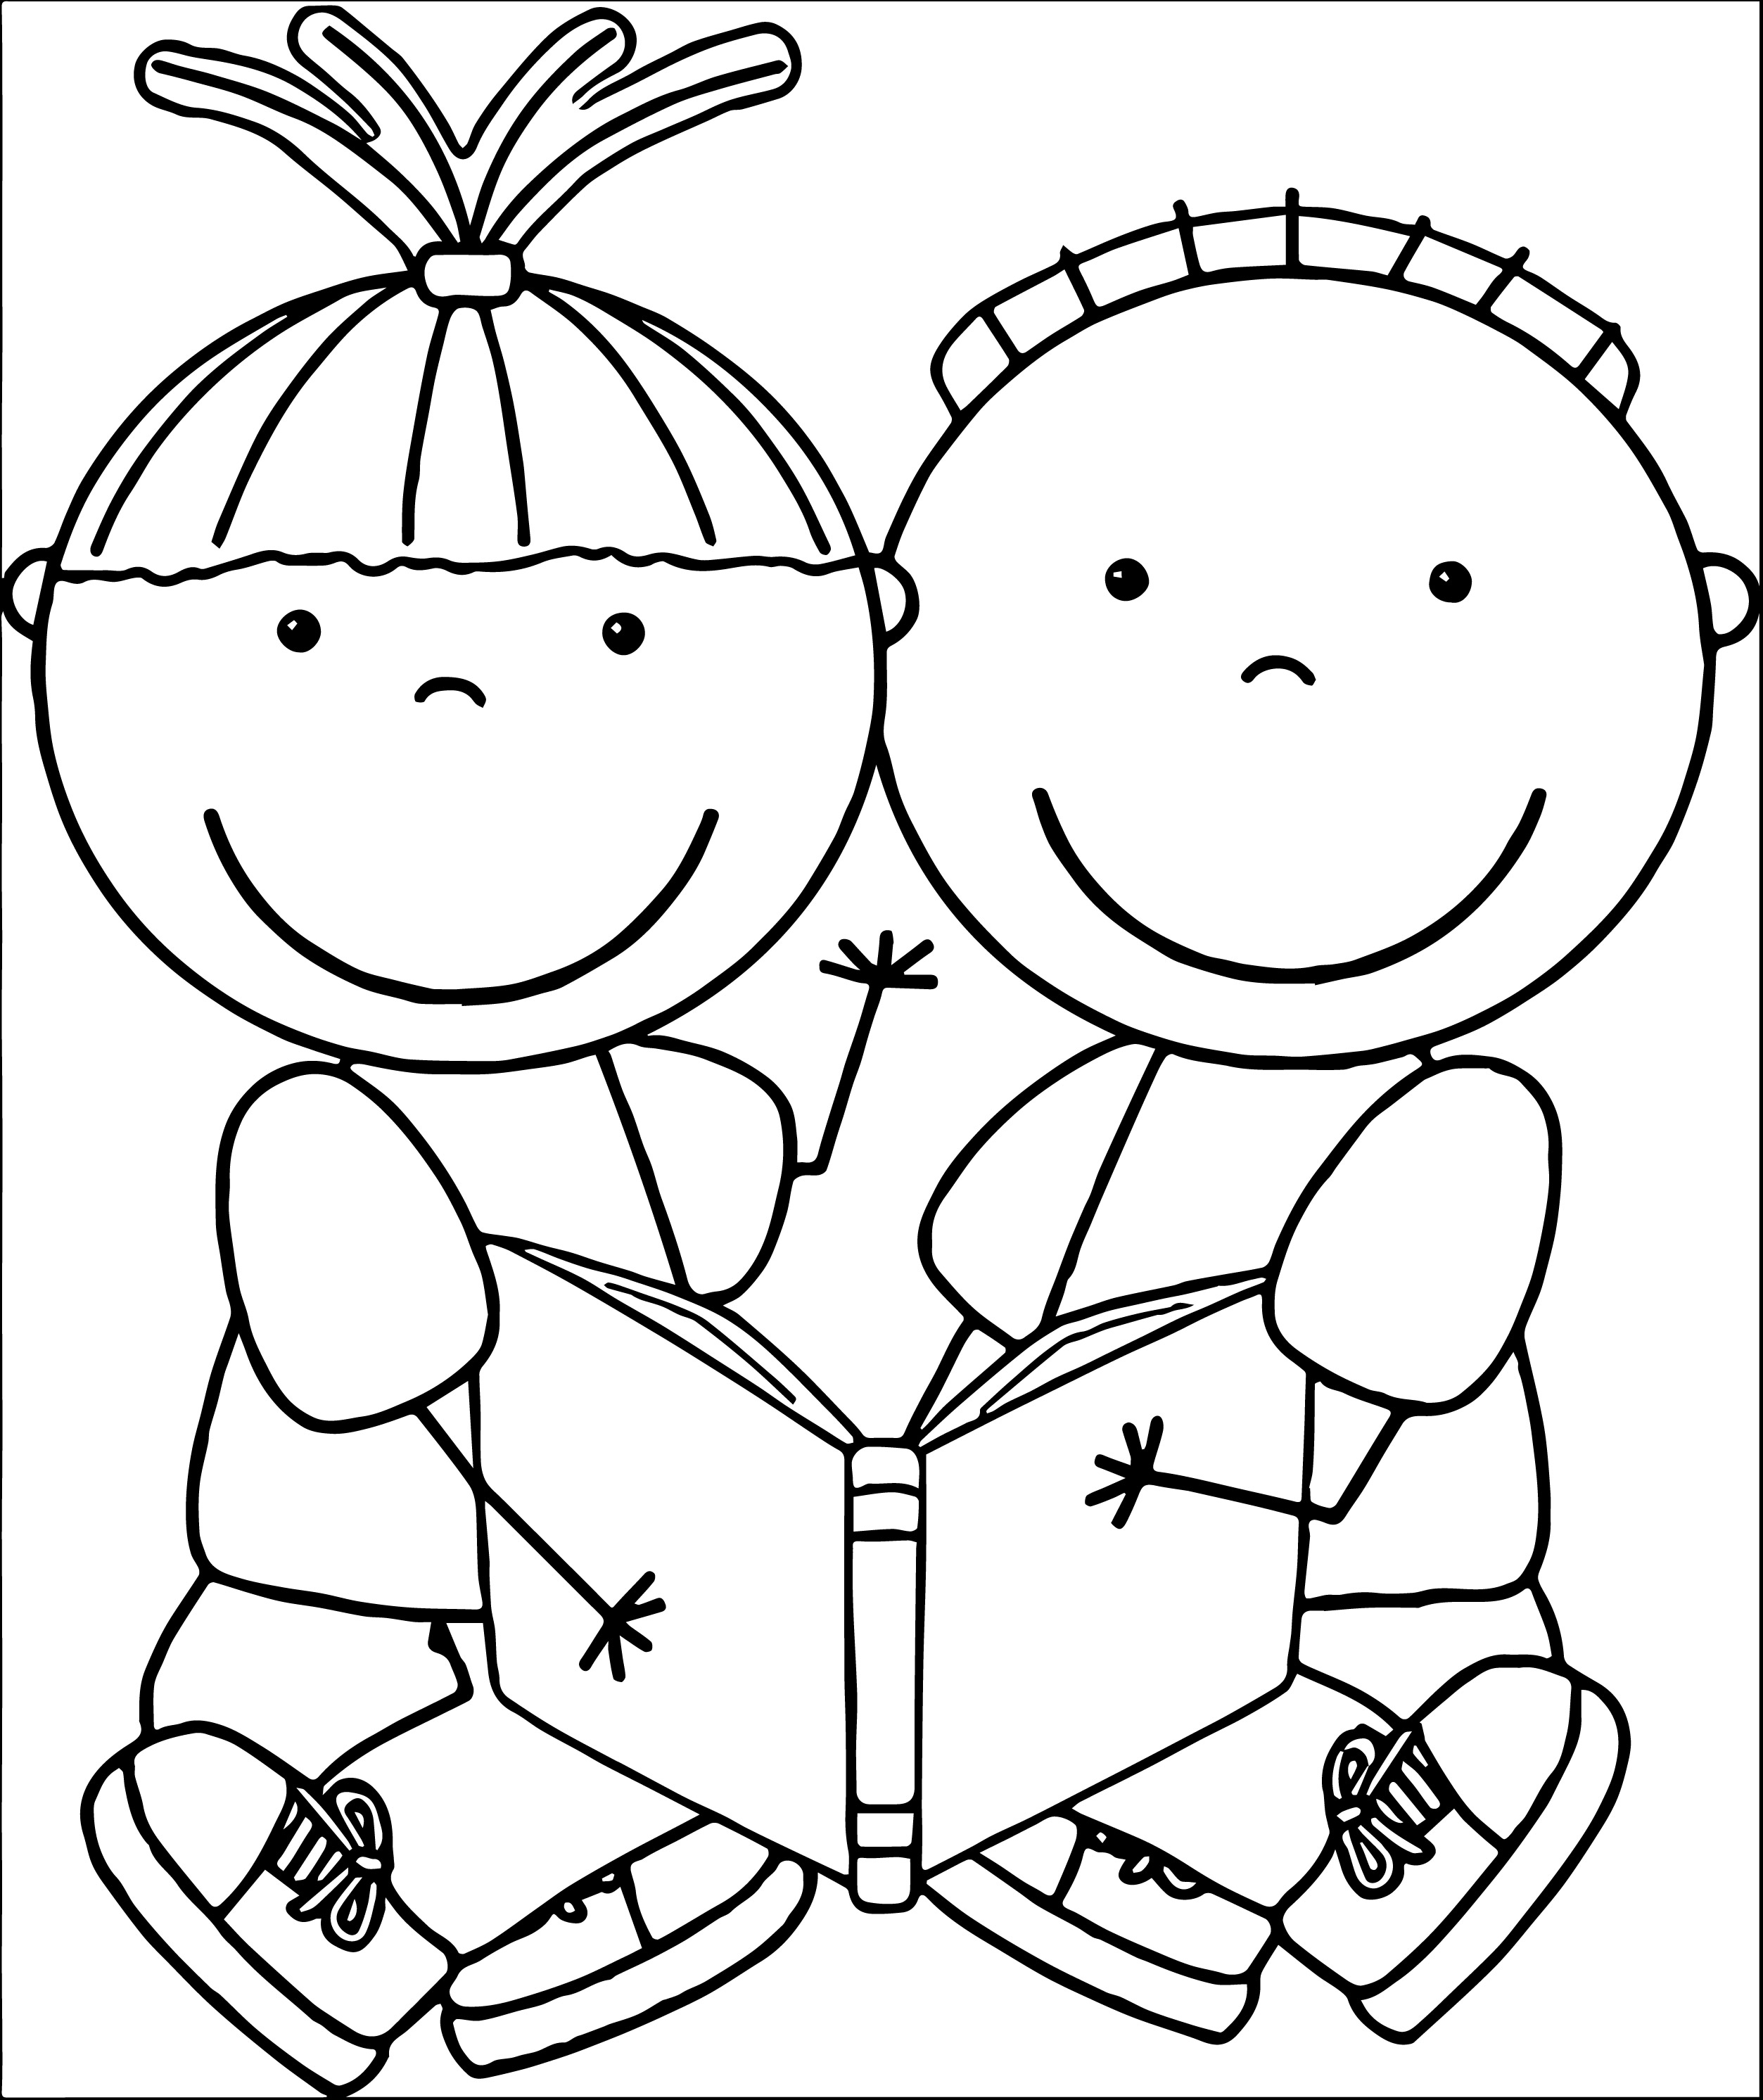 Black and whitekids reading clipart clip freeuse library Kid reading child reading a book clipart black and white clipartfest ... clip freeuse library